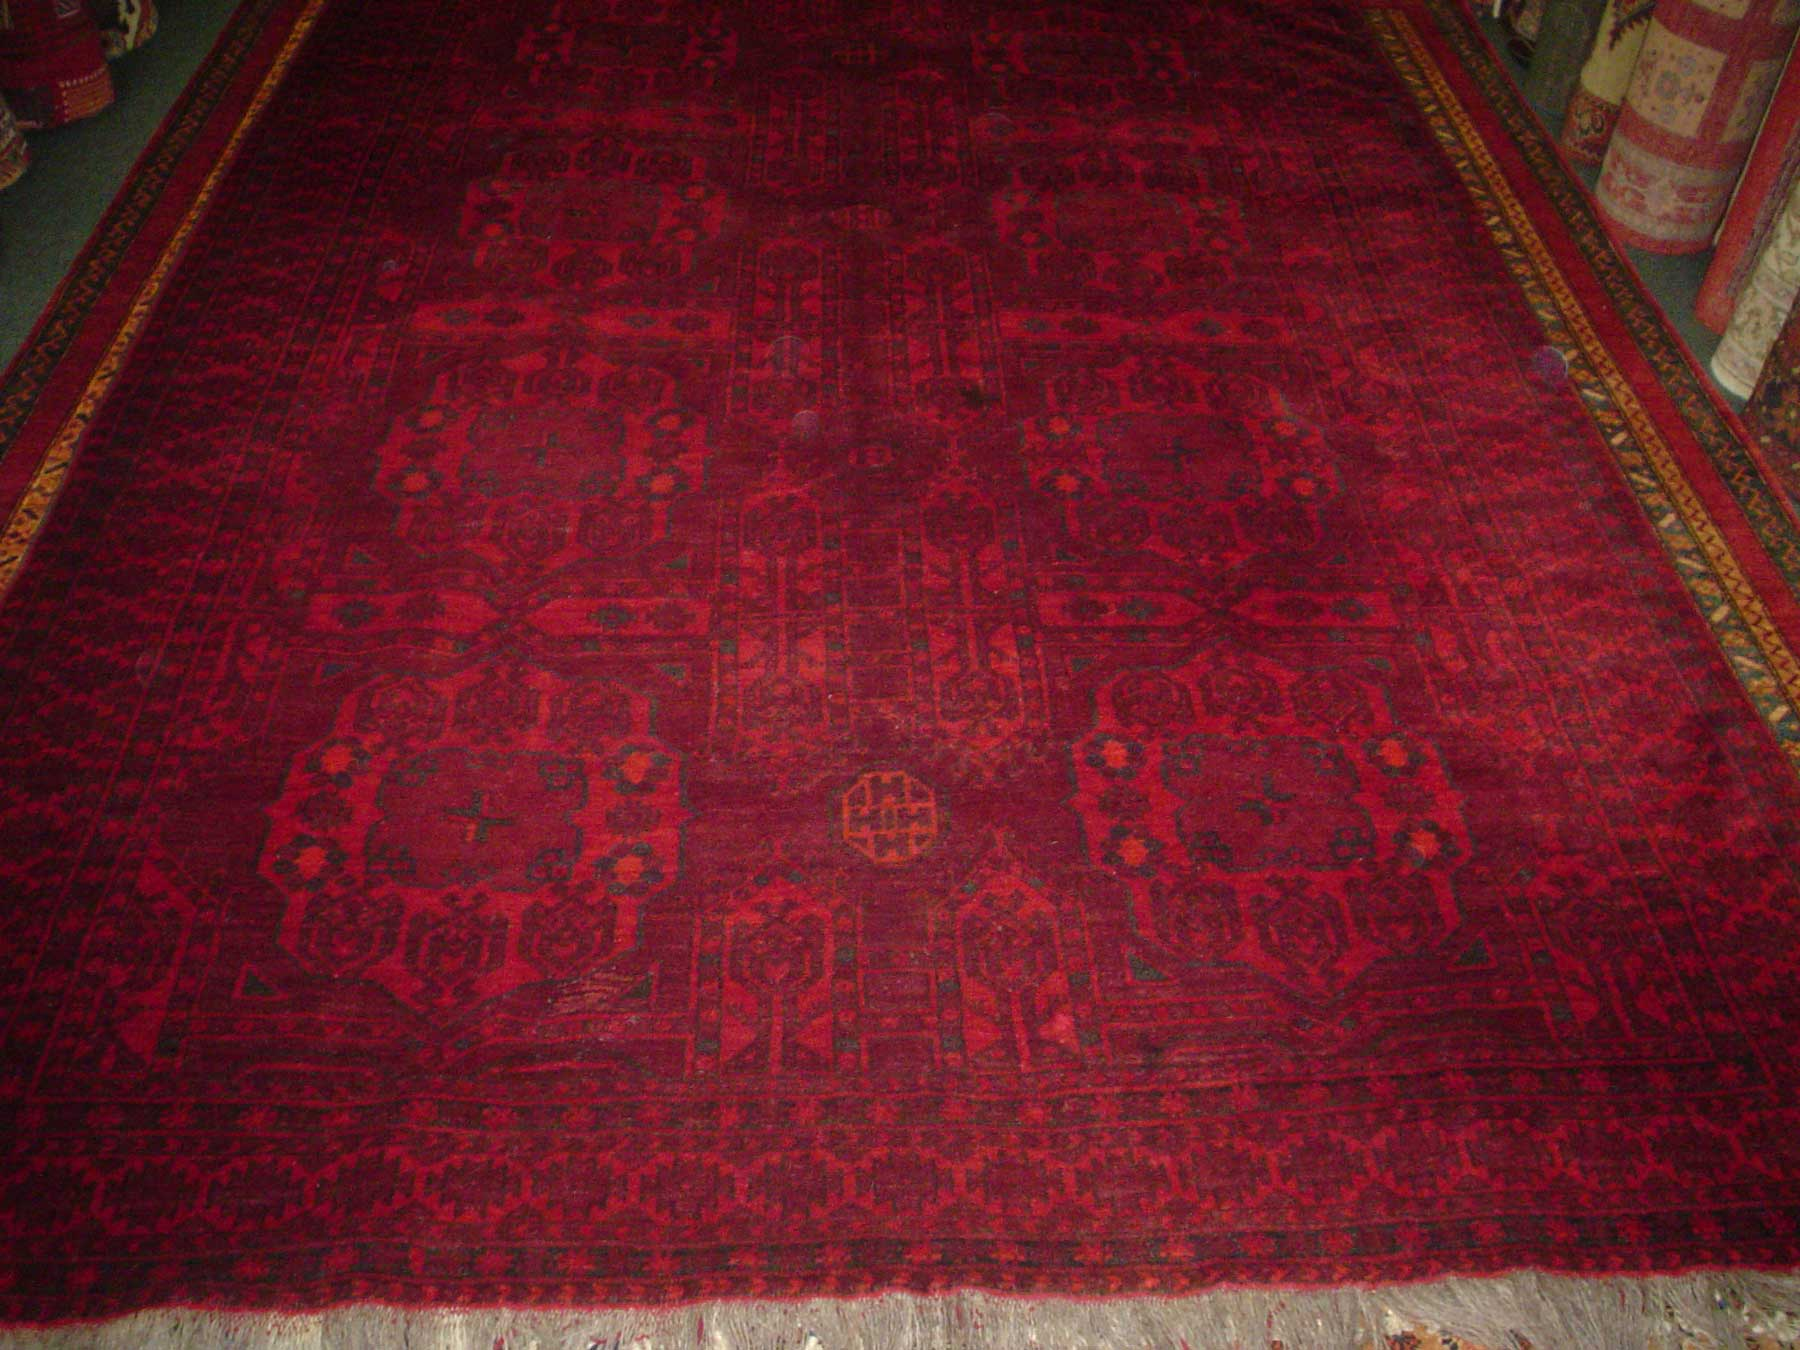 #14) 7' x 10' Semi-antique Turkoman rug. Deep, rich reds, hand spun wool.